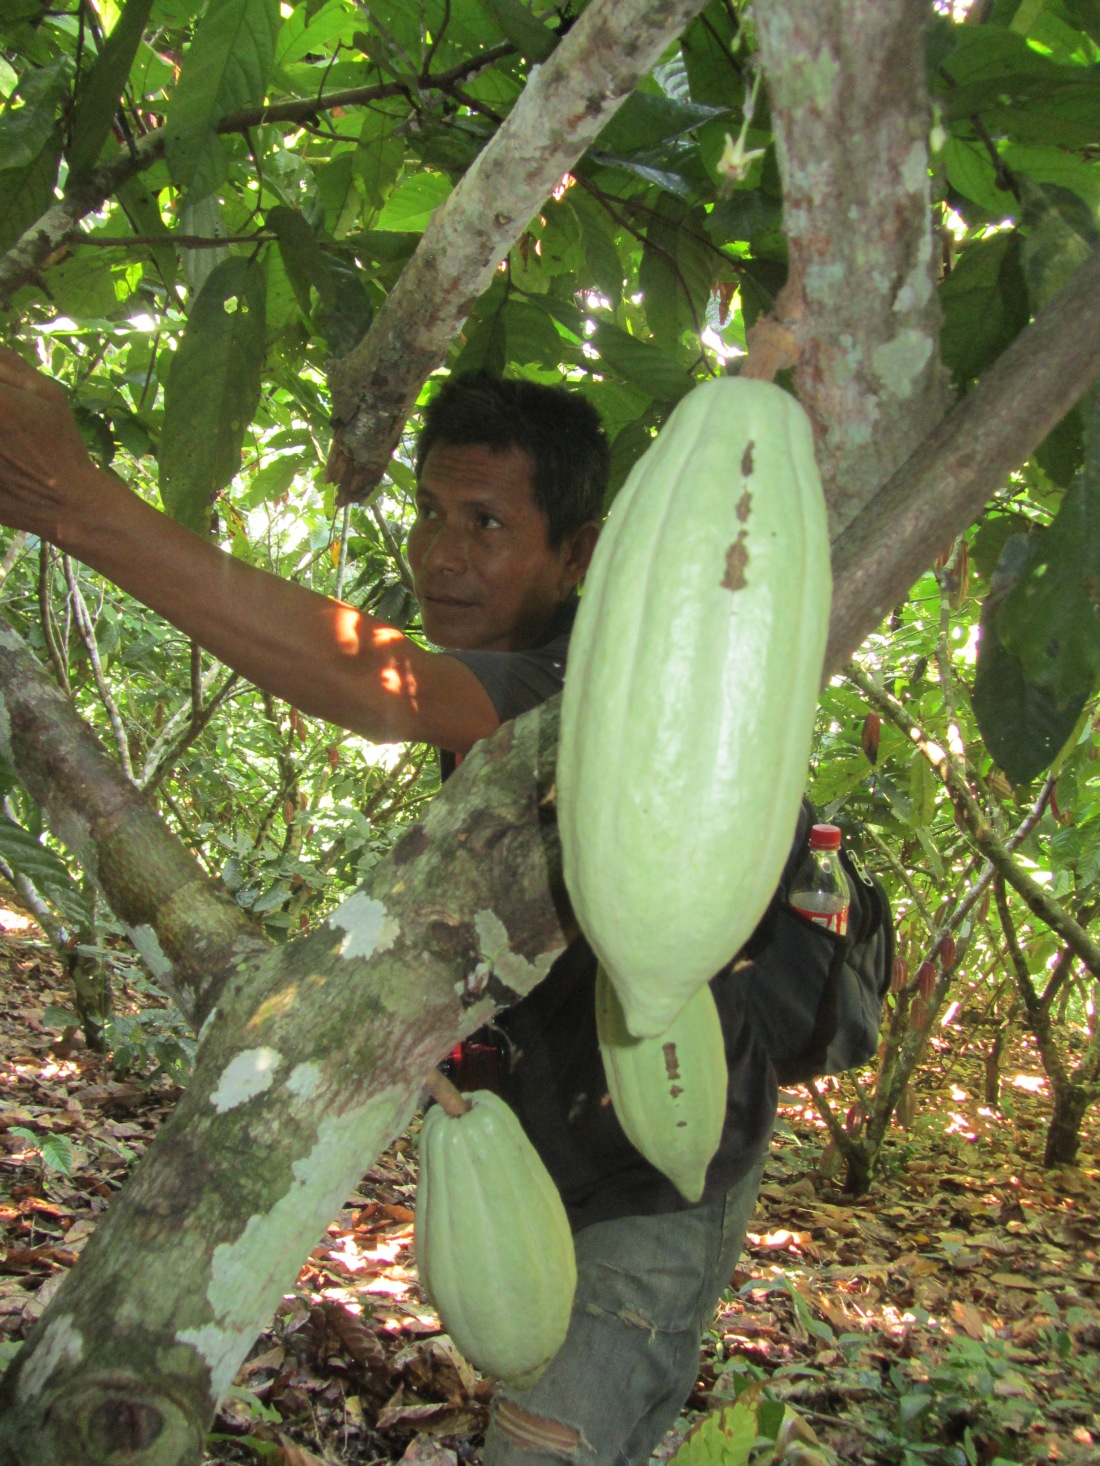 cacao farms in Peru | Amazon rainforest trips | chocolate making courses